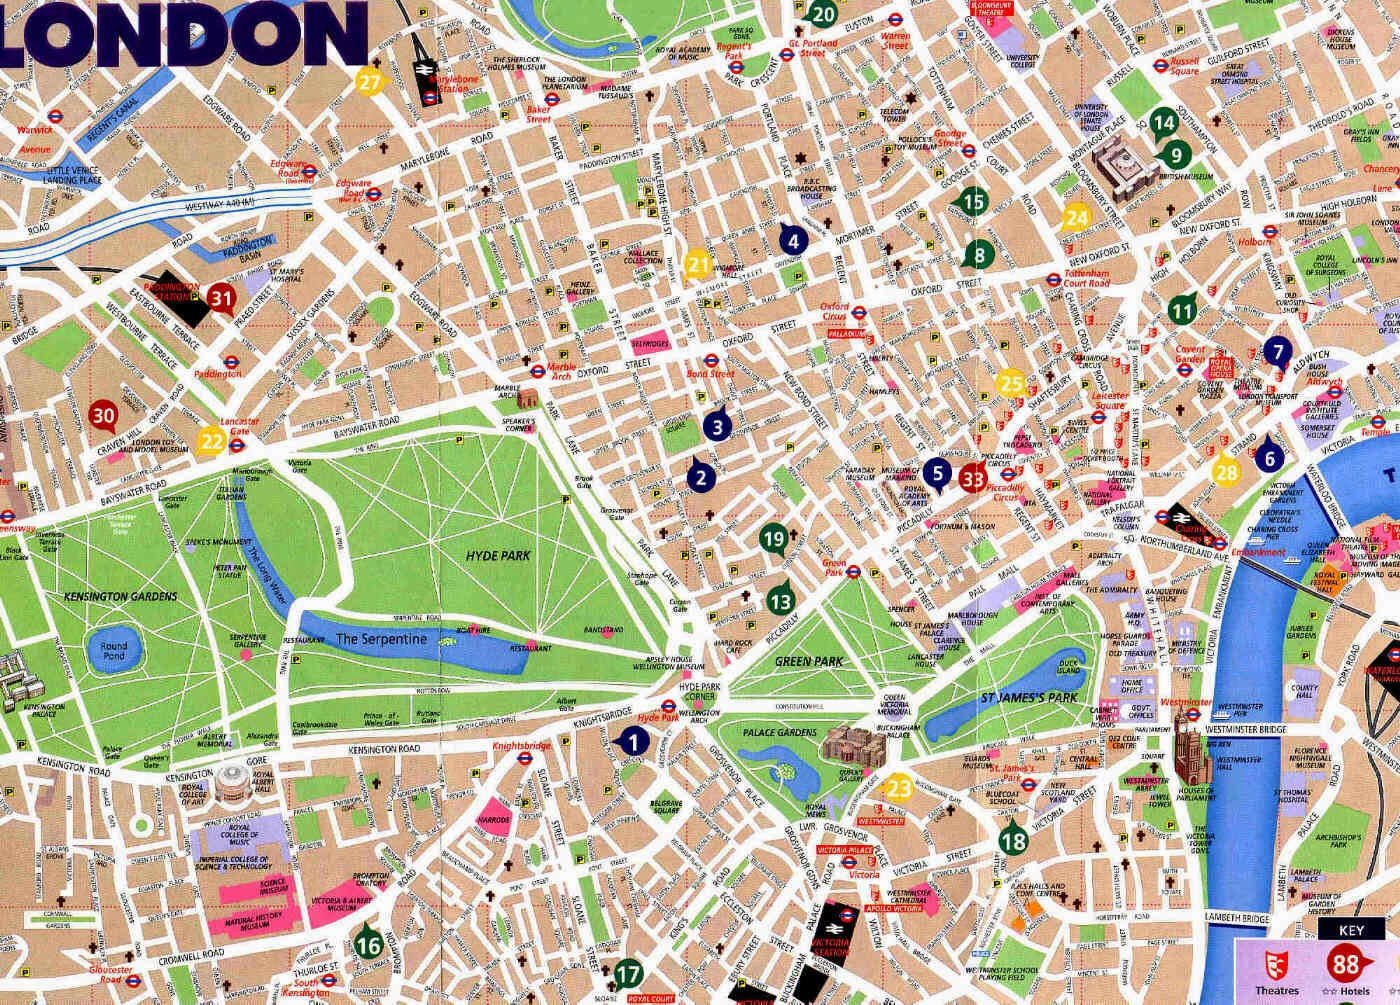 Street Map of London City for tourists